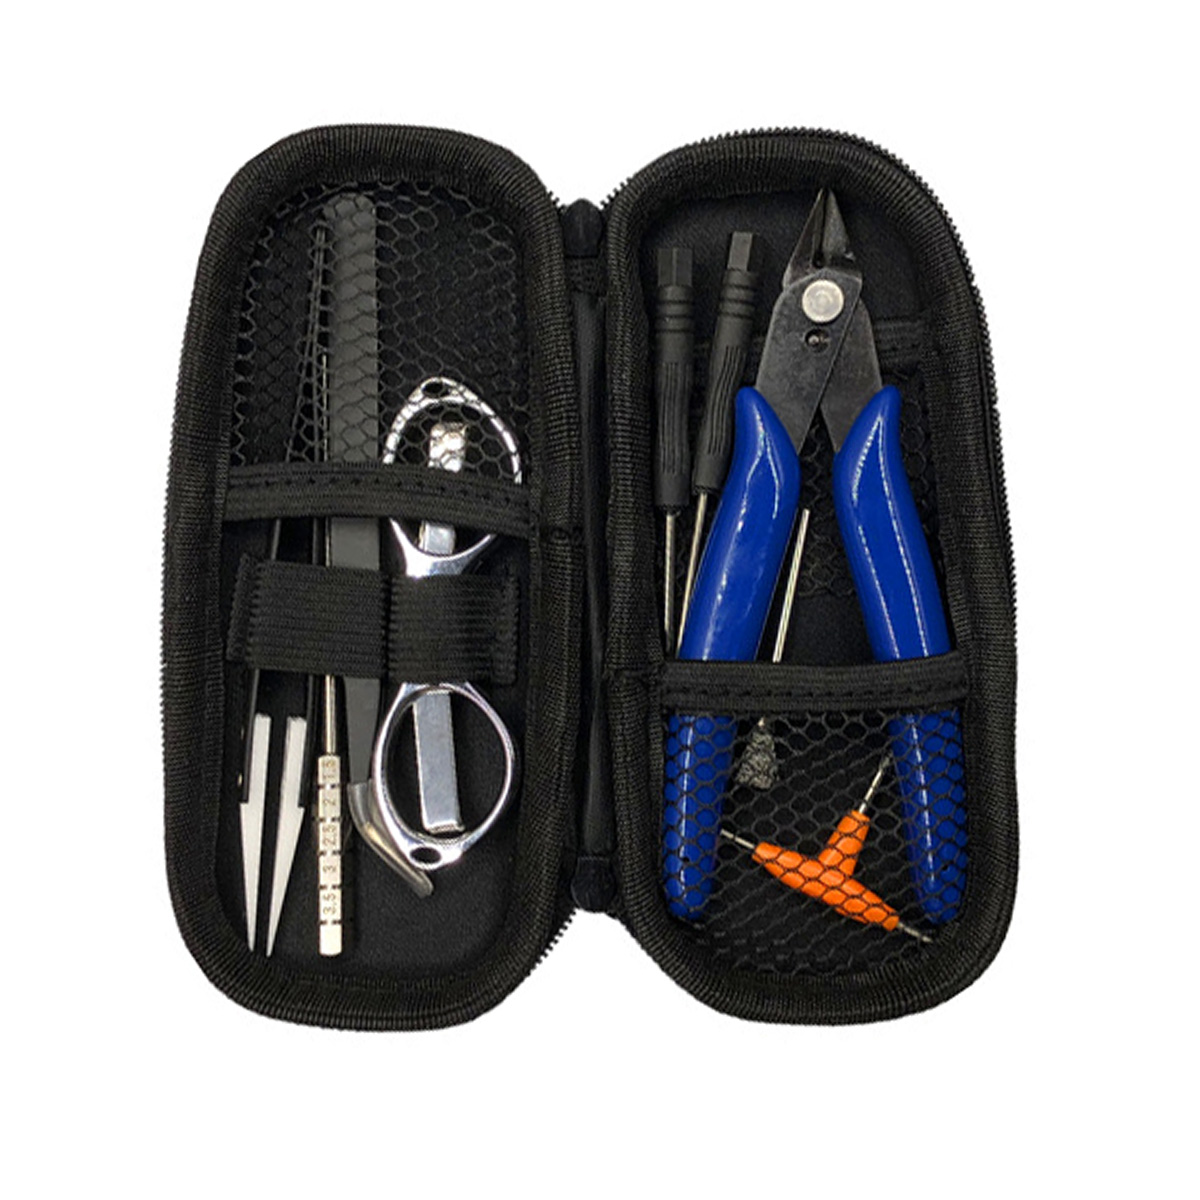 HHO-NEW Mini Vape DIY Tool Bag Tweezers Pliers Kit Coil Jig Winding For Packing Electronic Cigarette Accessories for Ego elect